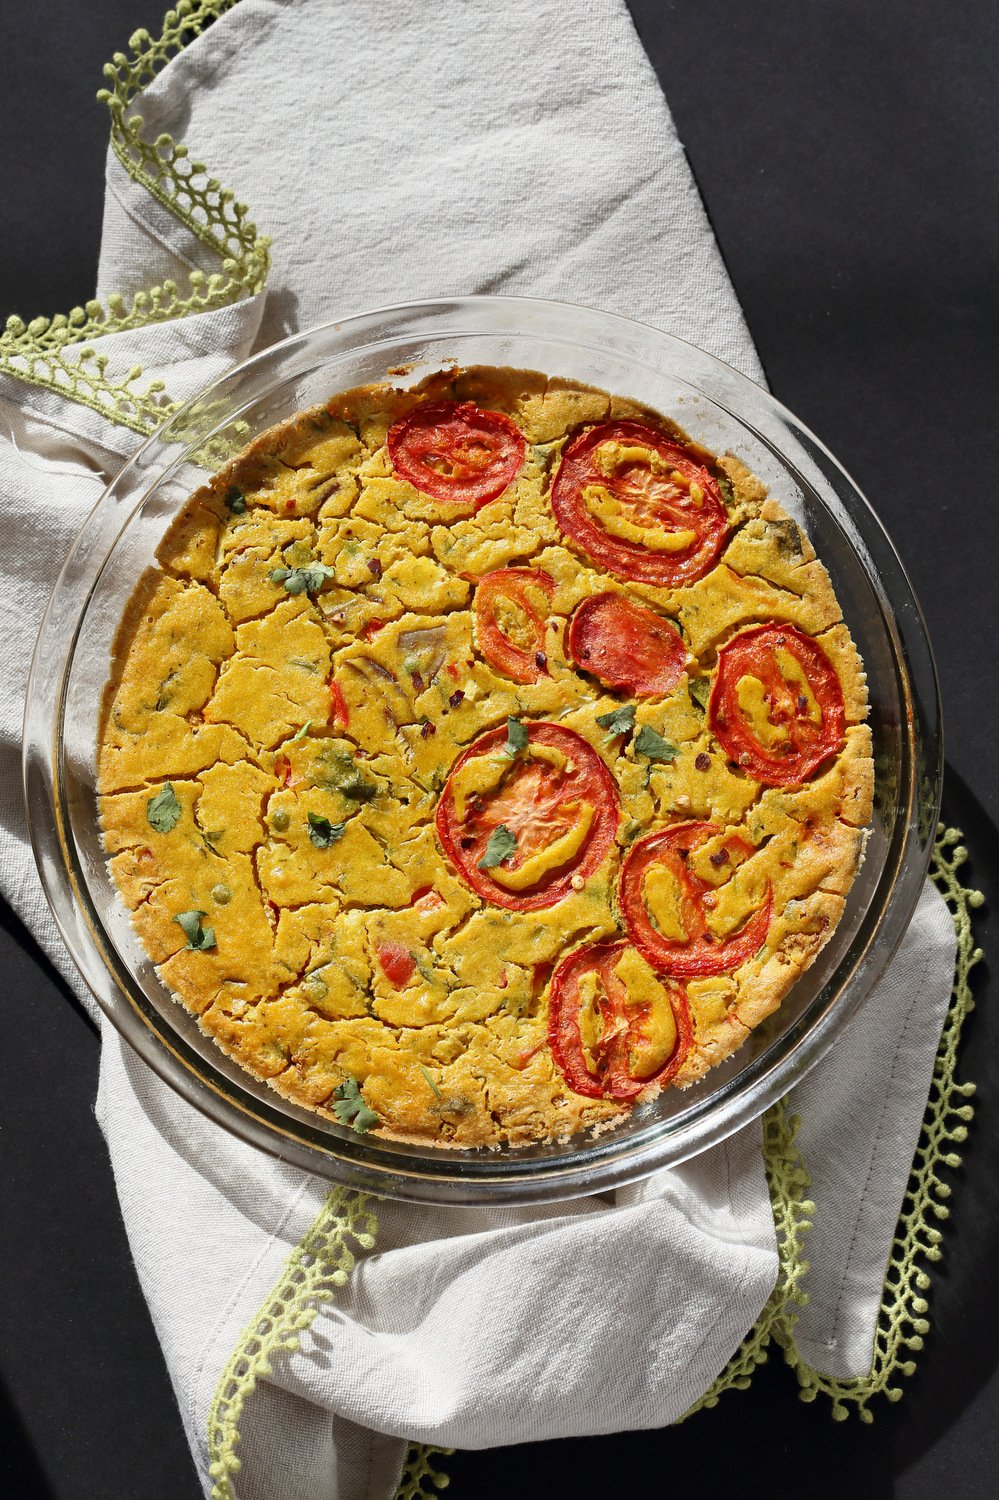 Chickpea Flour Frittata - Eggless Vegan Frittata Recipe. This Chickpea flour frittata is filling, easy and delicious. Use the batter to make pancakes, crepes, crustless quiche. #Vegan #Glutenfree #Soyfree #Nutfree #Recipe #veganricha